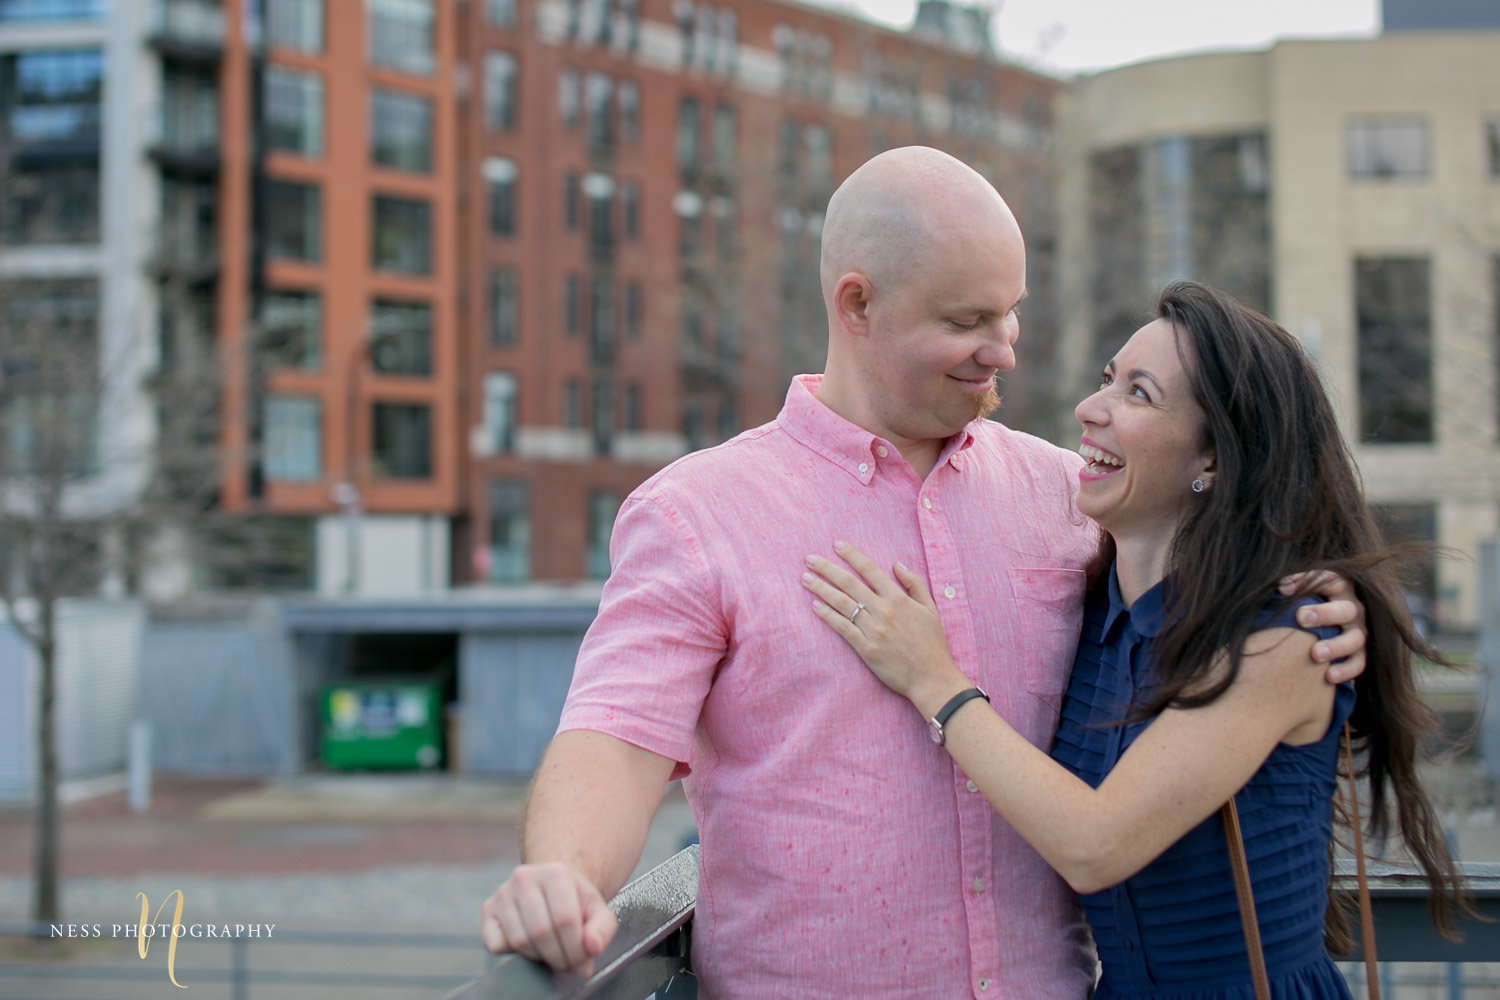 Adelina & Dan Engagement Photos Old Port Montreal with white dog By Ness Photography Wedding and Engagement Photographer 11.jpg